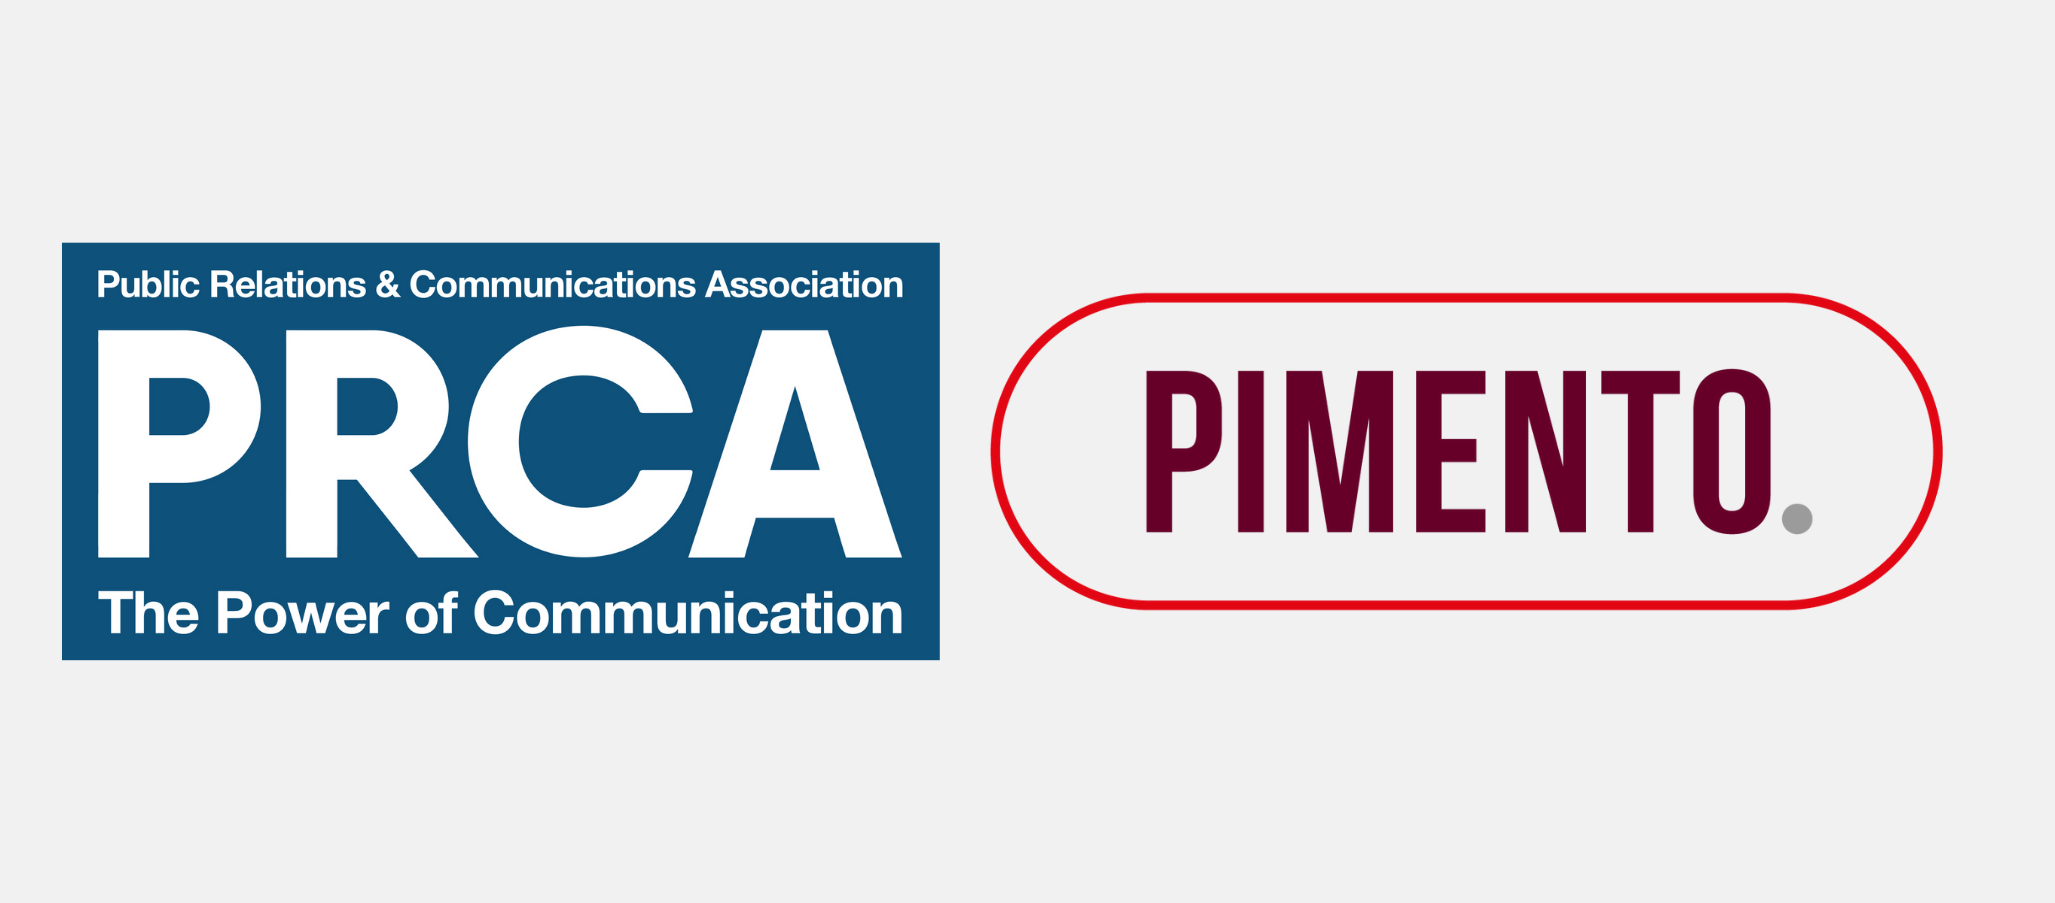 PRCA Welcomes Pimento as Their Newest Corporate Member